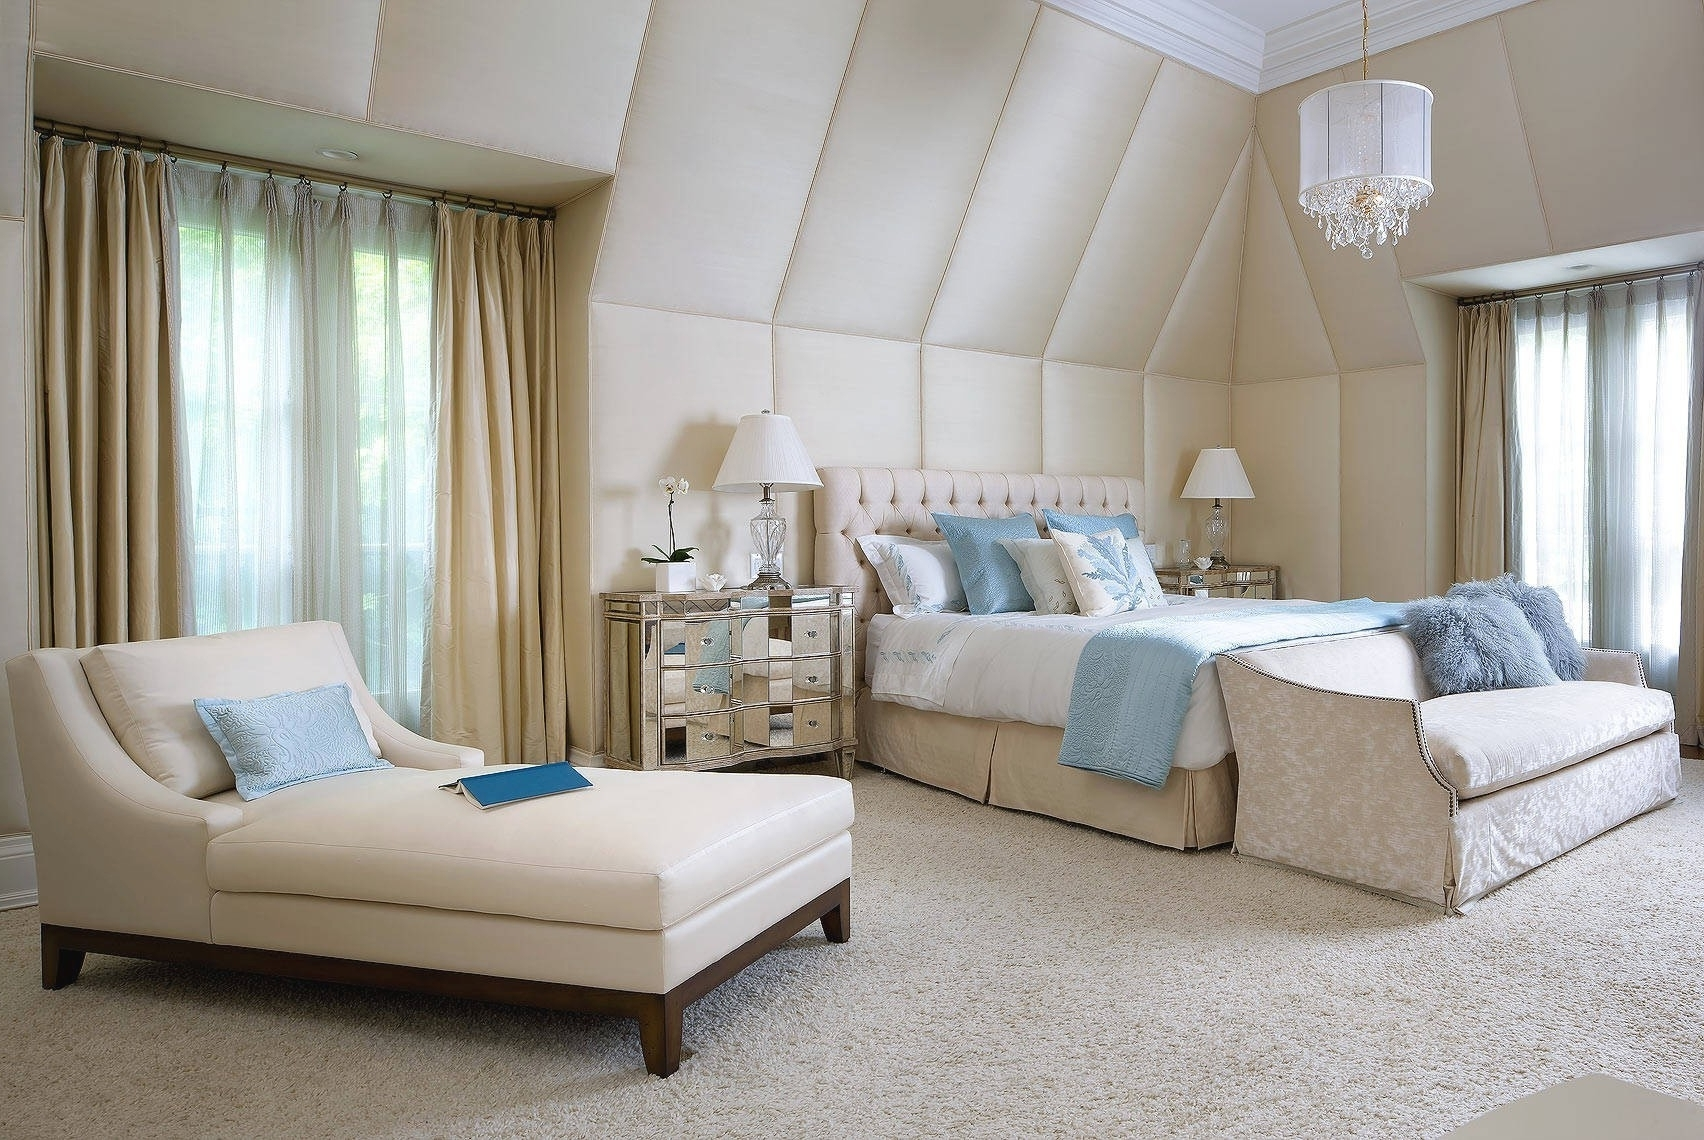 Lounge Chair : Bedroom Chaise Lounge Chairs In Wonderful Bedroom Throughout Well Liked Chaise Lounges For Bedroom (View 10 of 15)